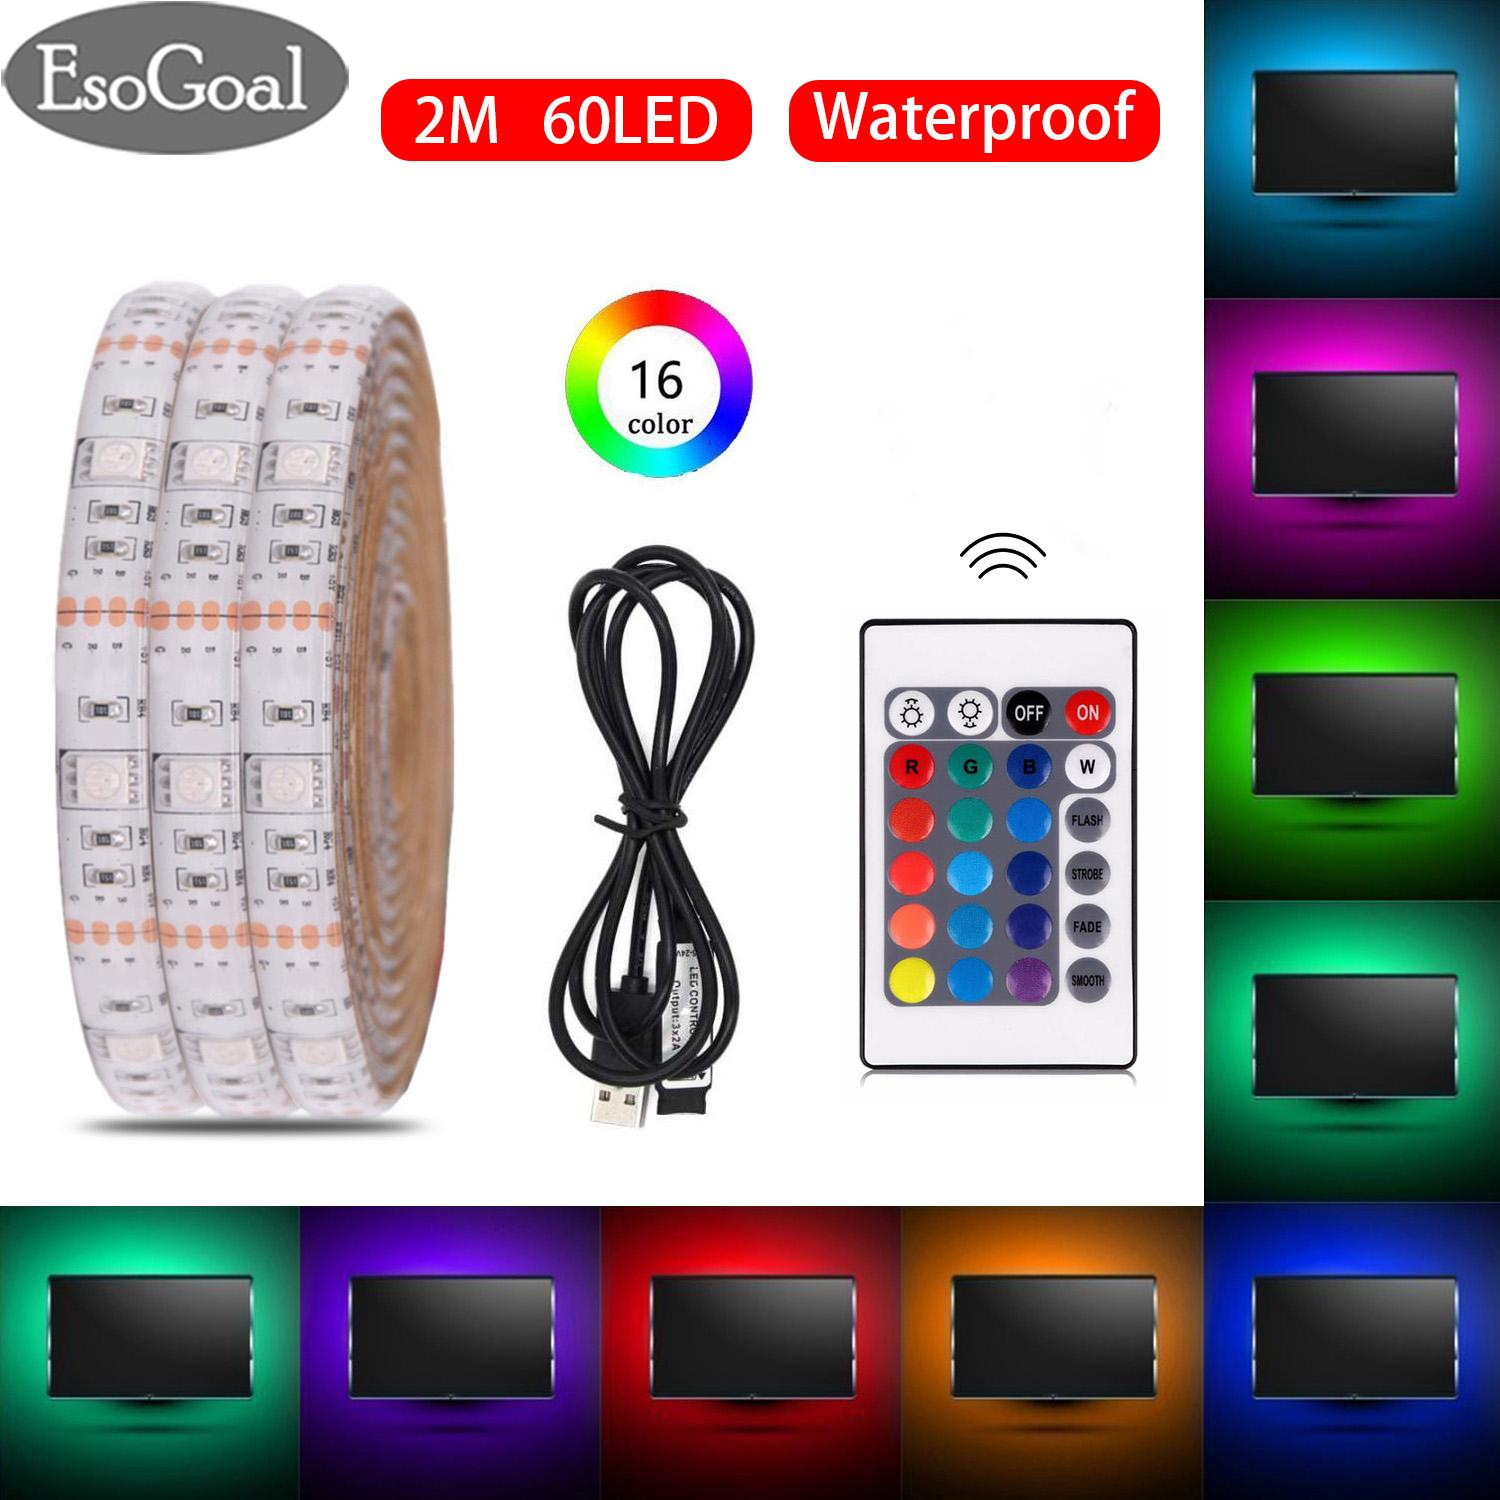 Led Lighting For Sale Lamps Prices Brands Review In Digital Rgb Weatherproof Strip 60 1m Esogoal Usb Light Waterproof Portable 5050 2m Tv Backlight Ip65 60leds